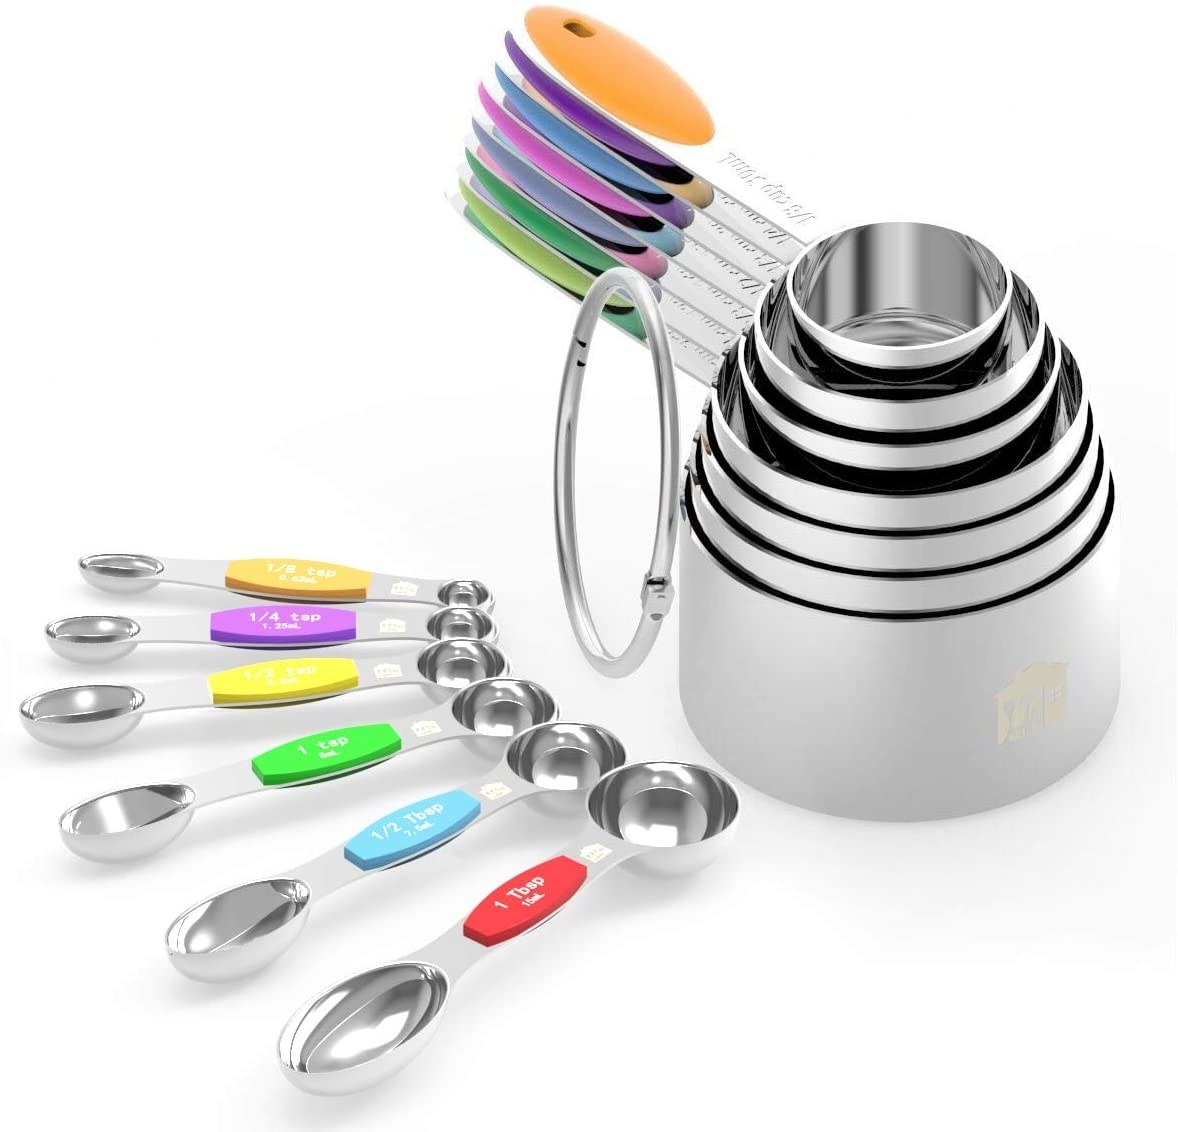 A stack of measuring cups and measuring spoons of all different sizes.